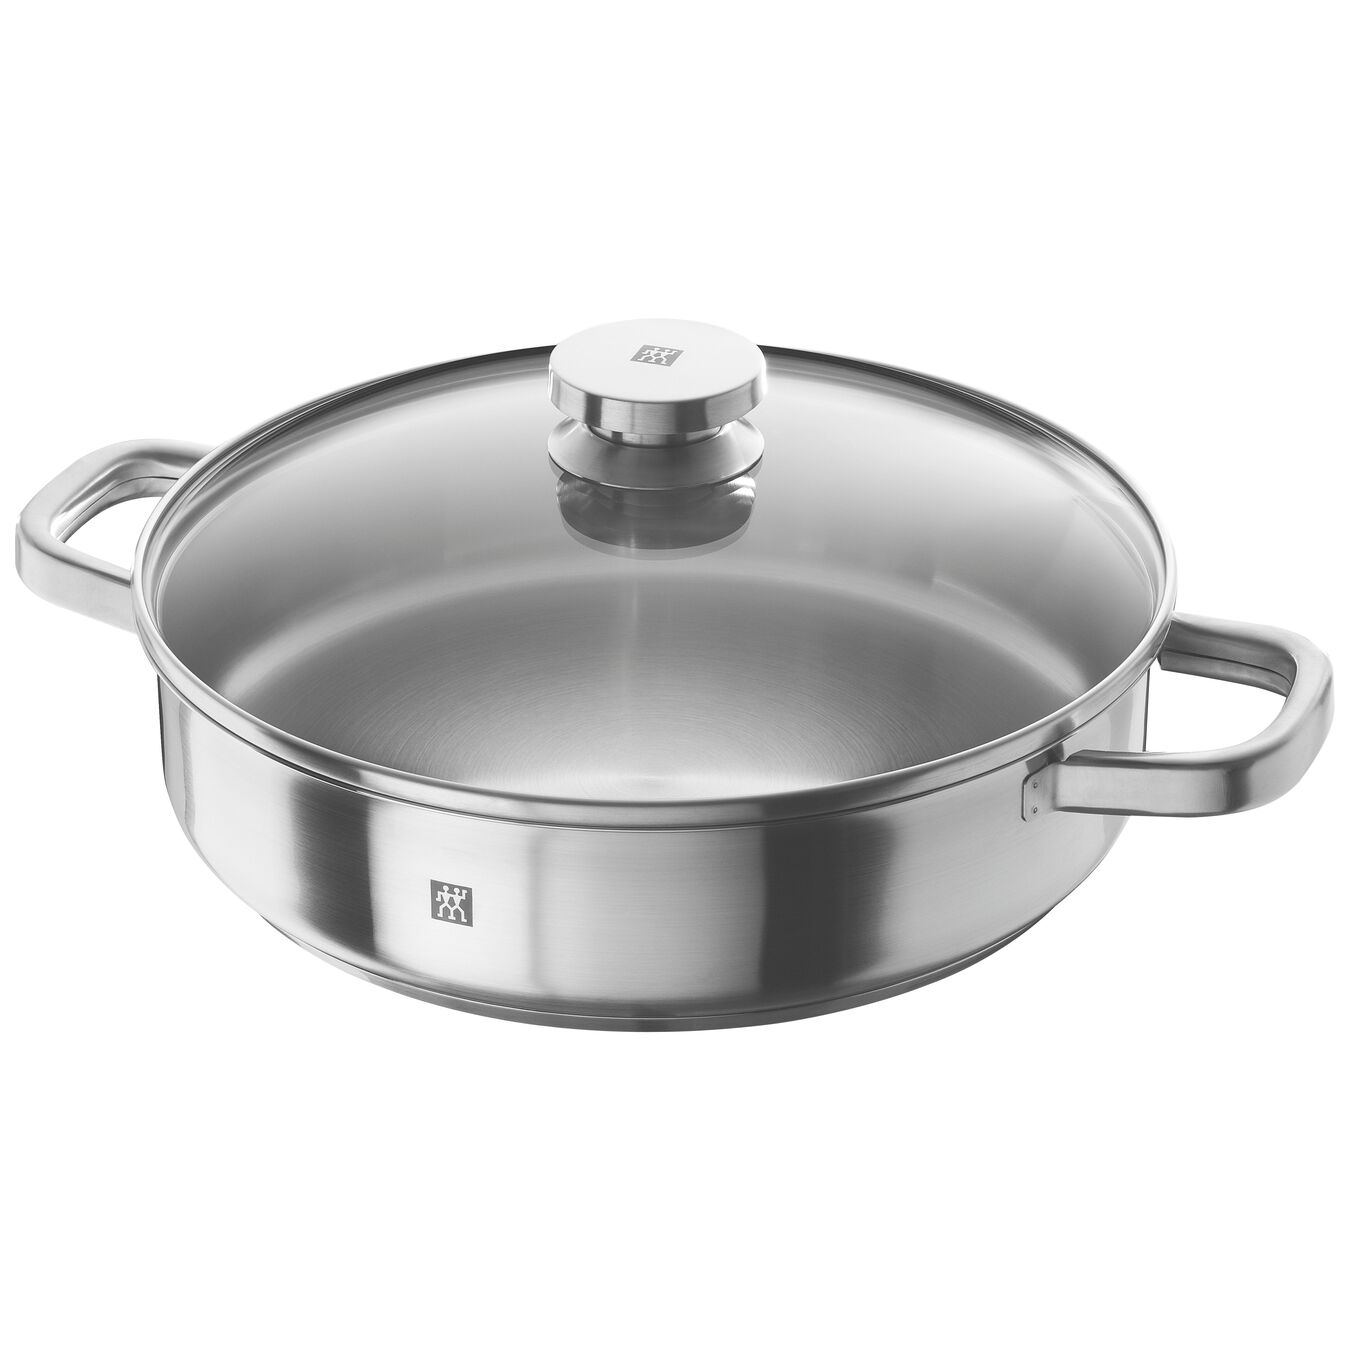 round Double Handled Saute Pan with lid, silver,,large 1